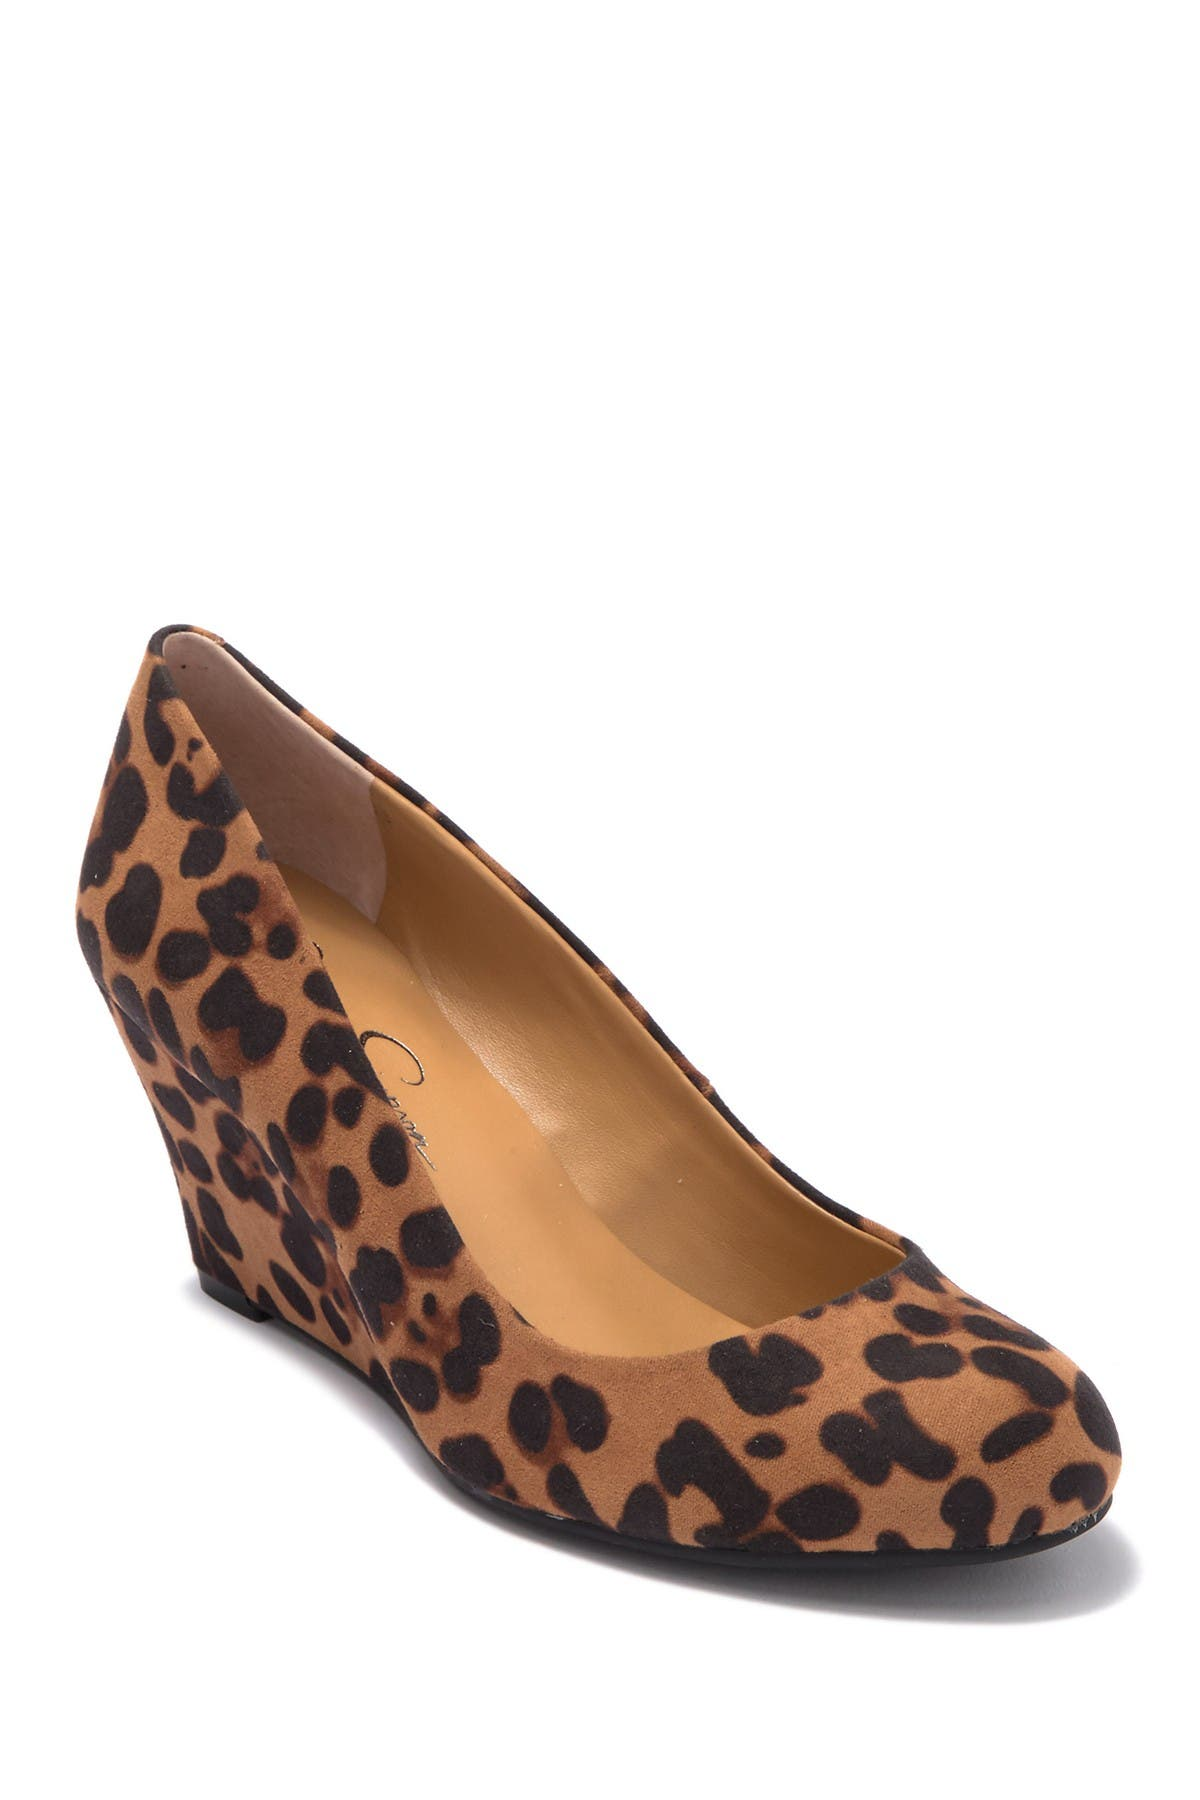 Image of Jessica Simpson Suzanna Wedge Pump - Wide Width Available